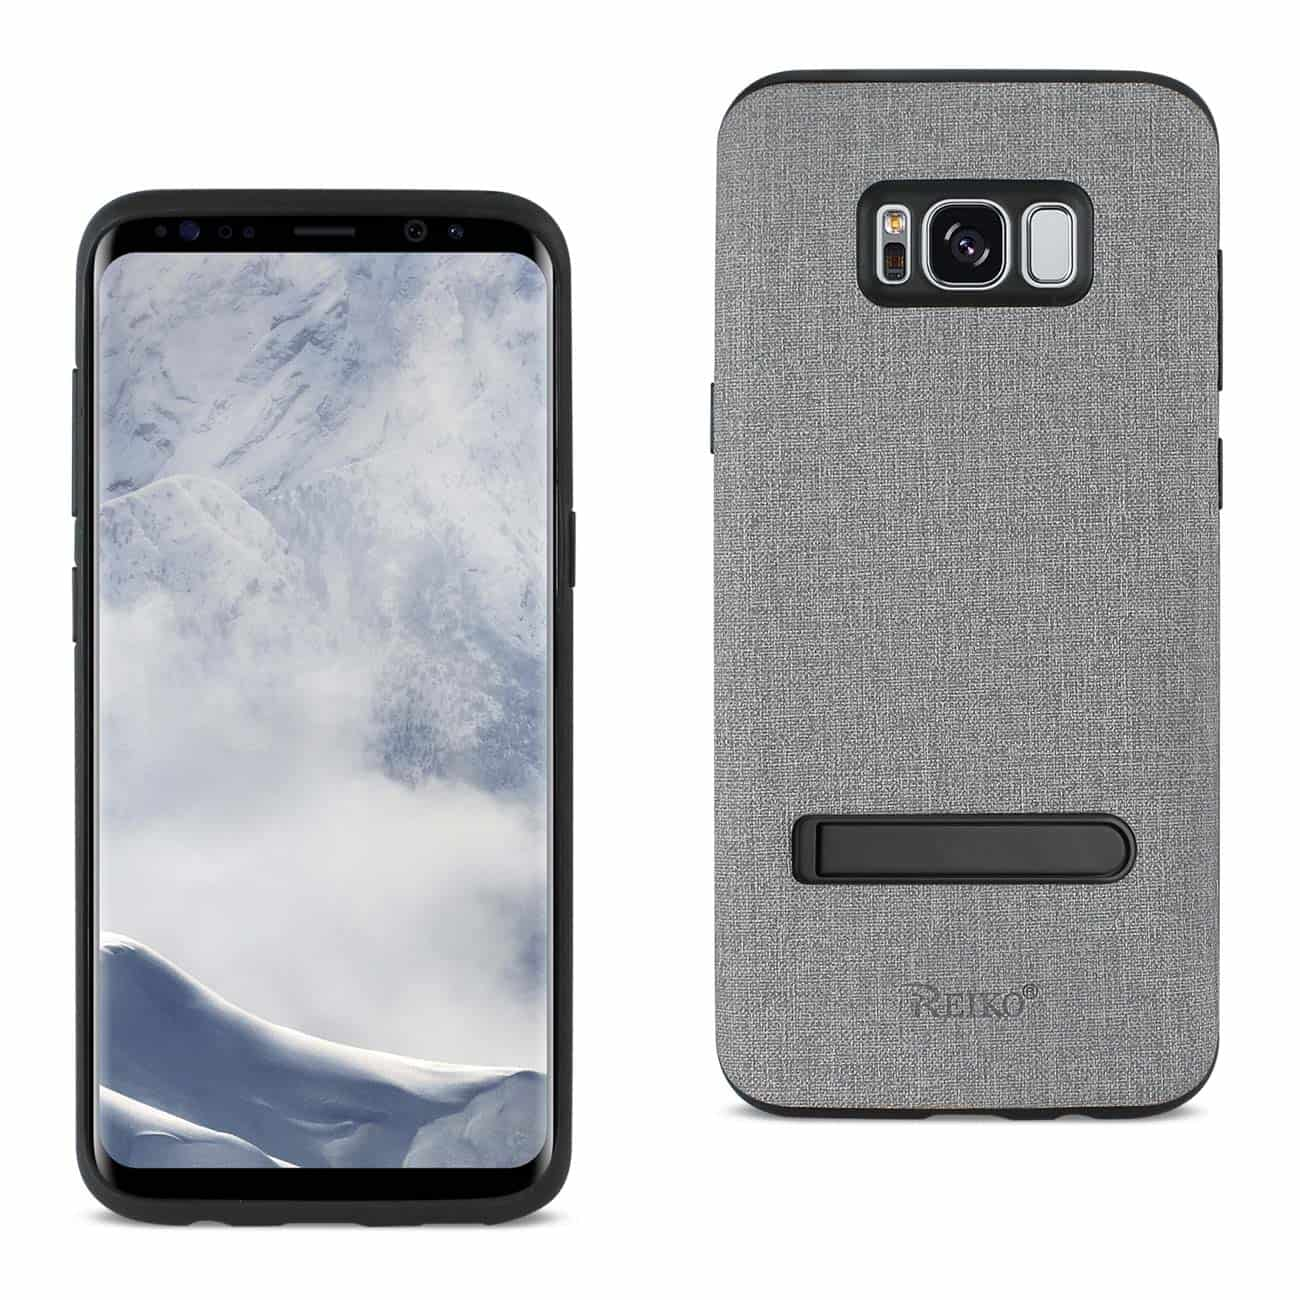 SAMSUNG GALAXY S8 EDGE/ S8 PLUS DENIM TEXTURE TPU PROTECTOR COVER IN GRAY